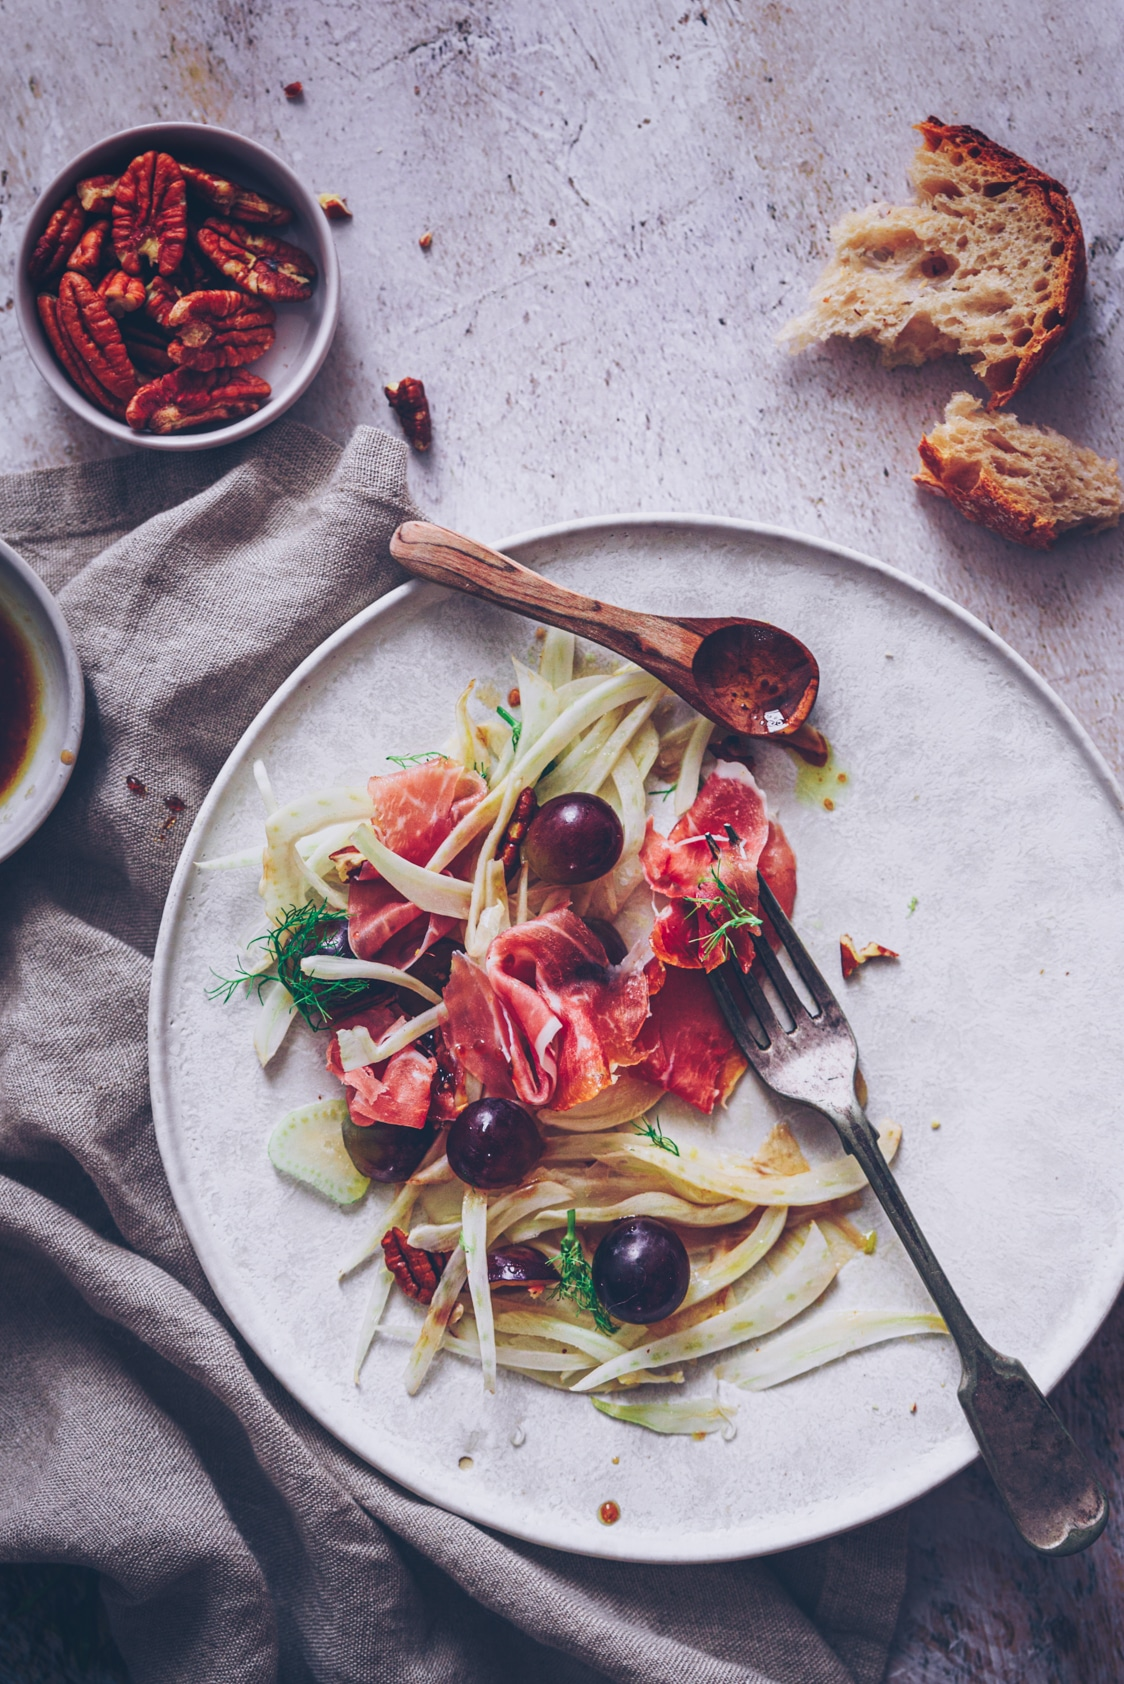 fennel recipes photography - confitbanane